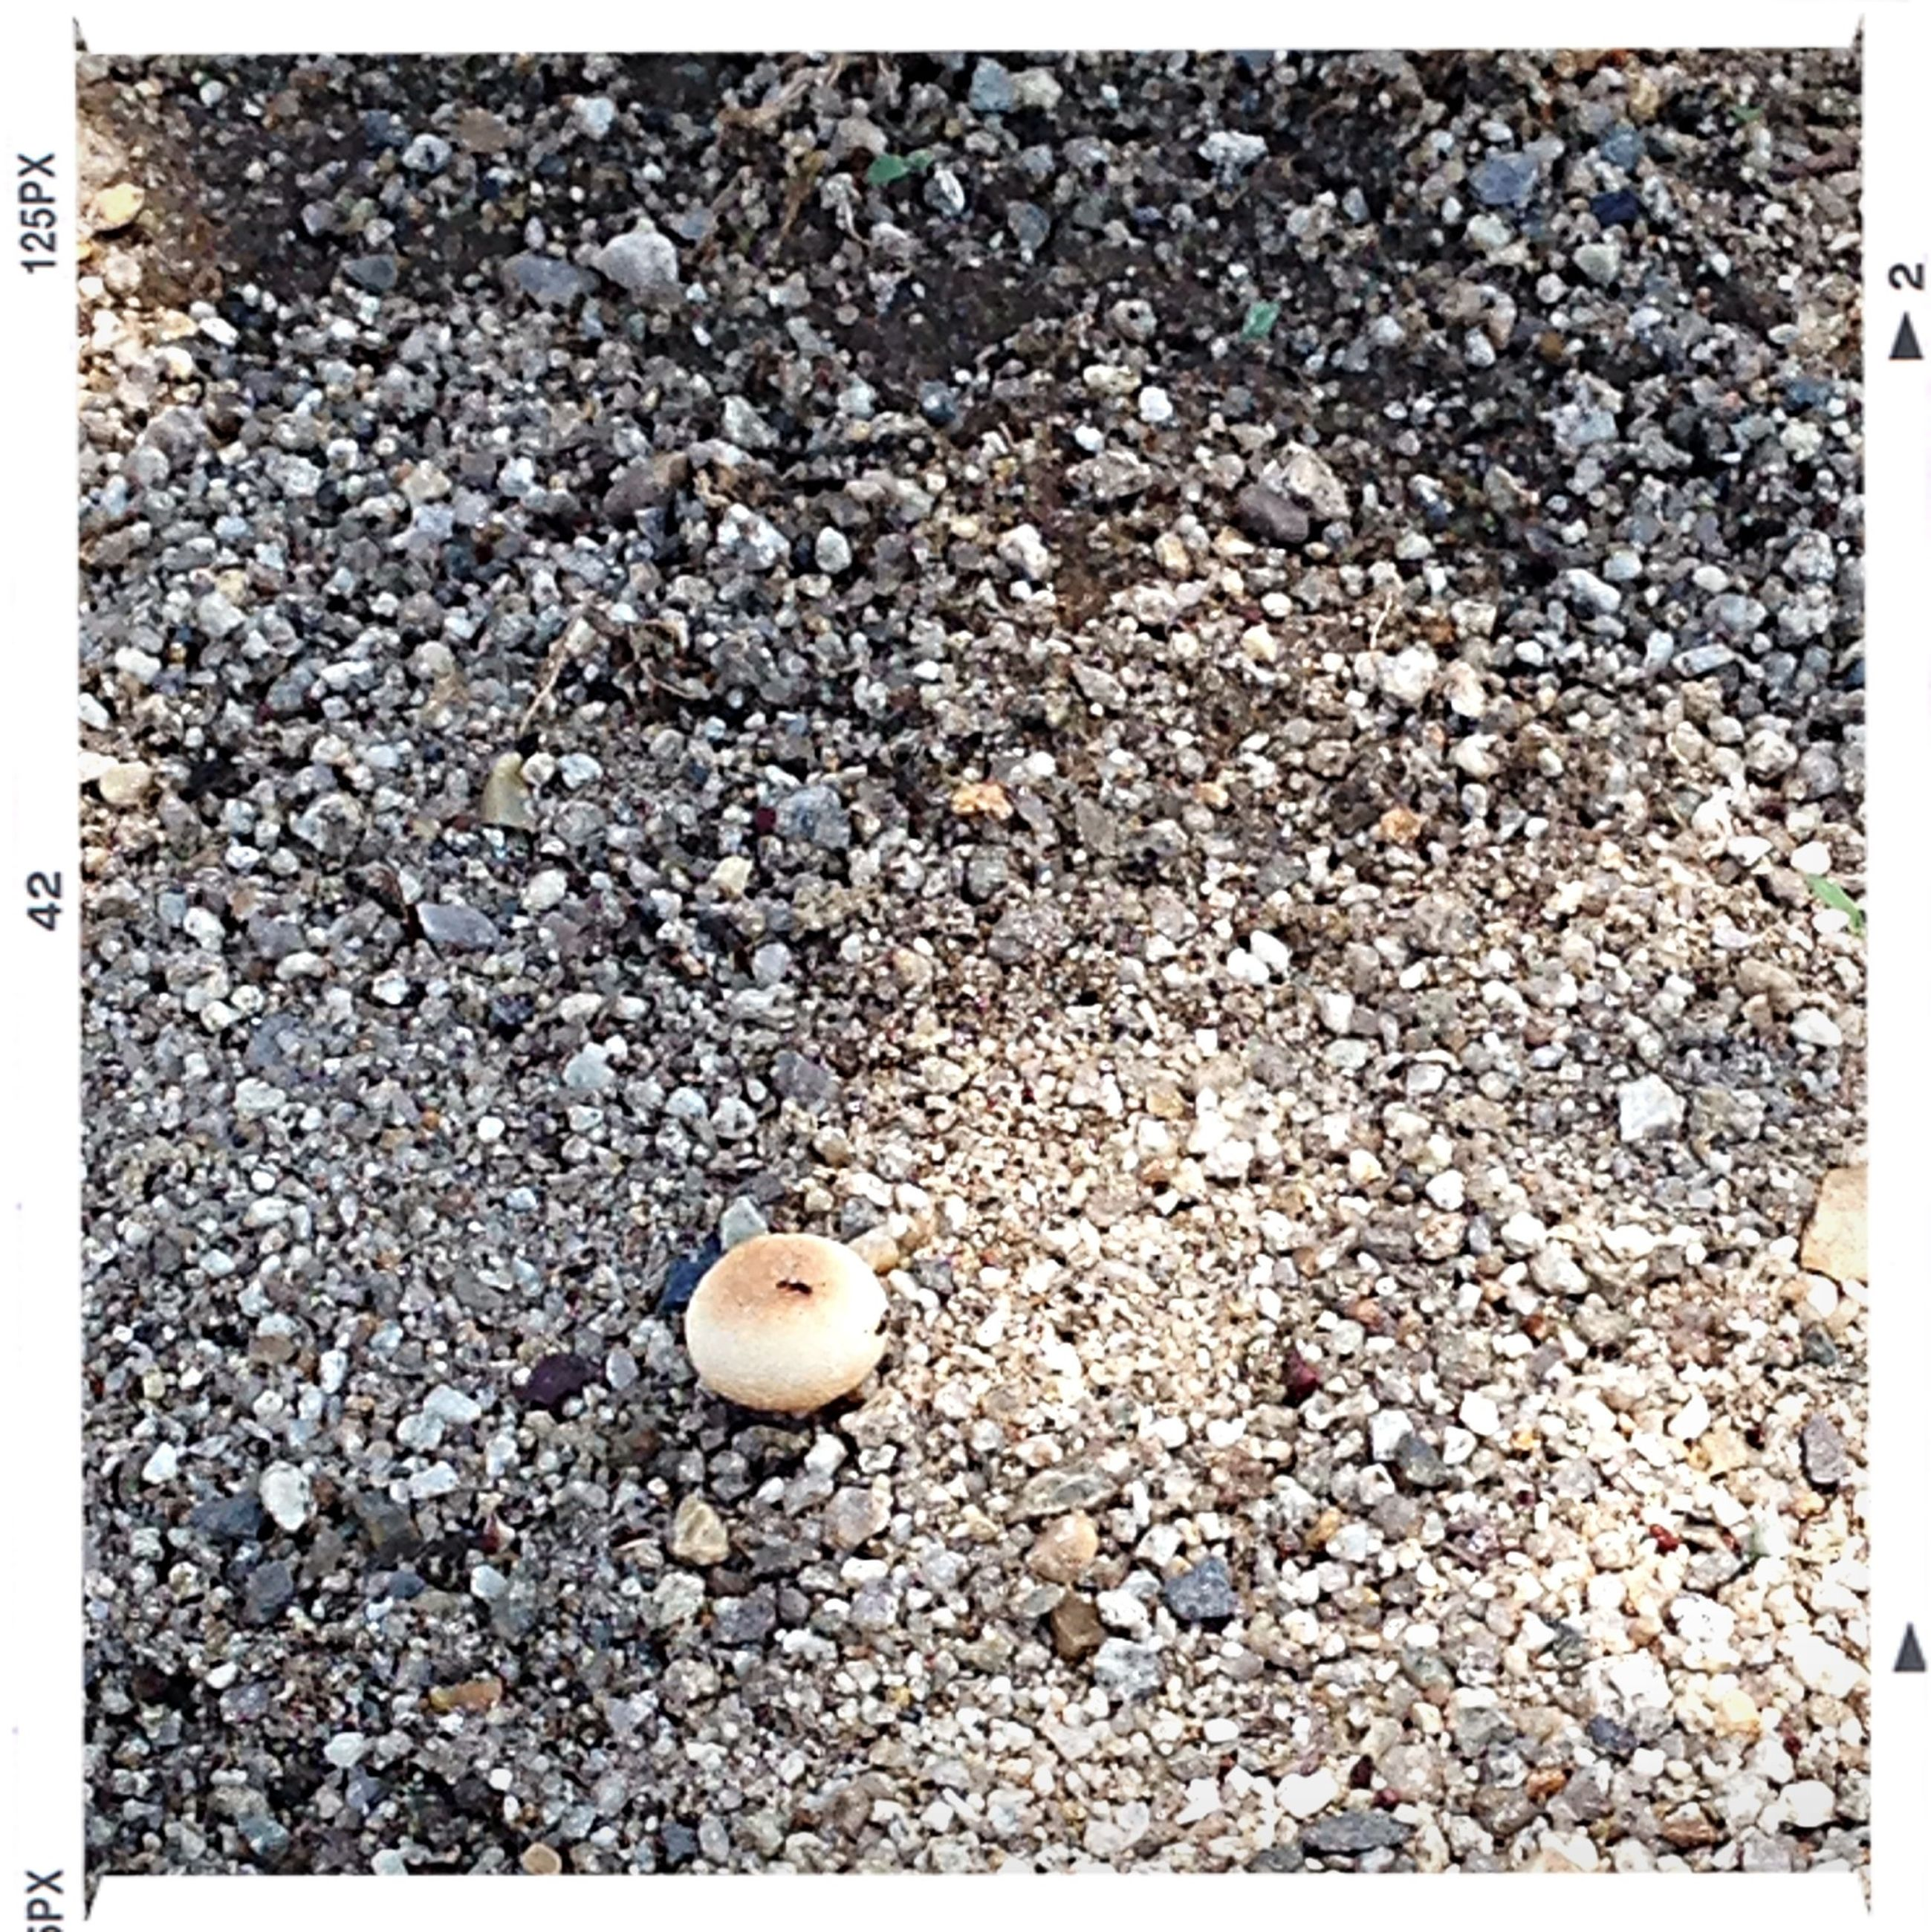 transfer print, auto post production filter, high angle view, pebble, stone - object, ground, abundance, nature, textured, dry, large group of objects, day, no people, outdoors, close-up, full frame, backgrounds, street, dirt, stone